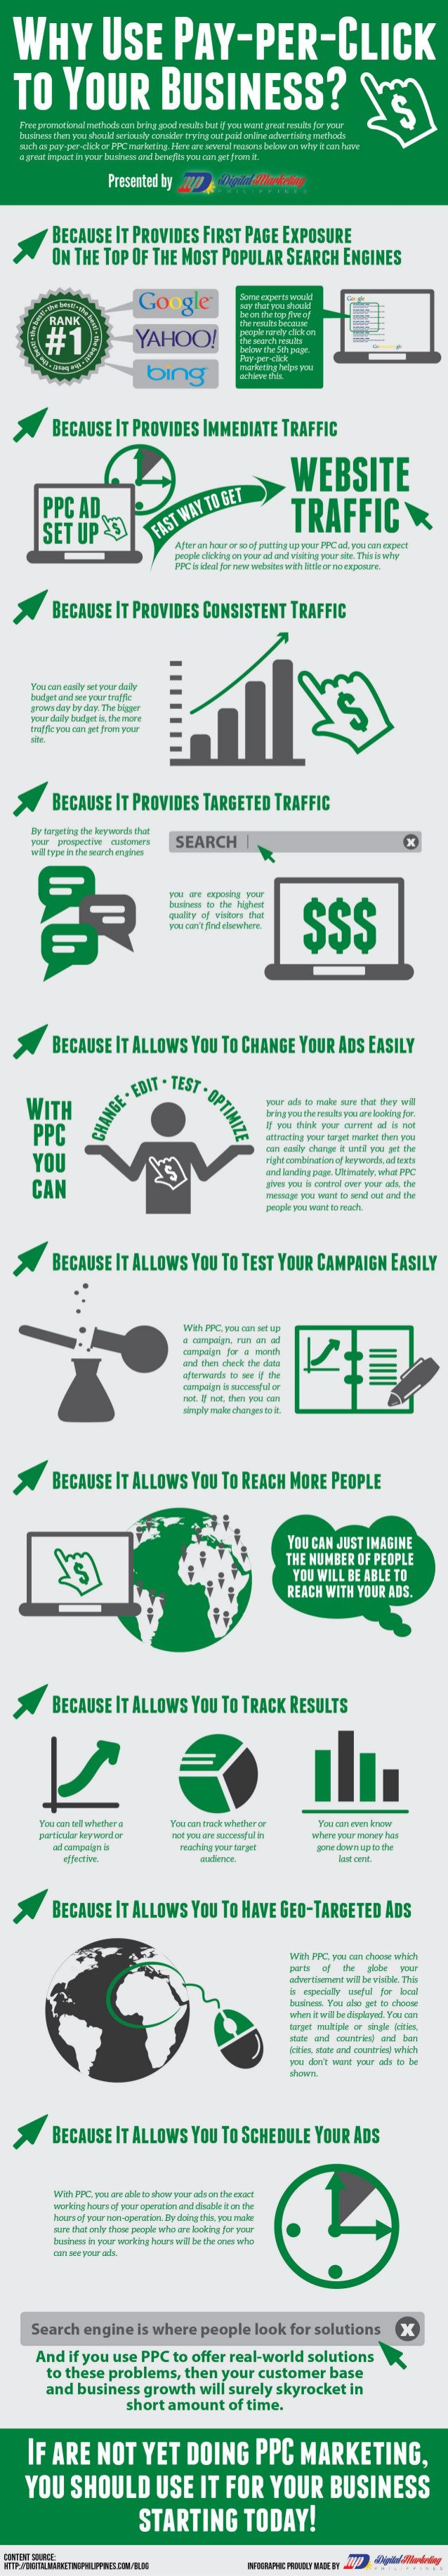 Why use Pay per click to your business #infographic #marketing #PPC via http://www.searchbloom.com/